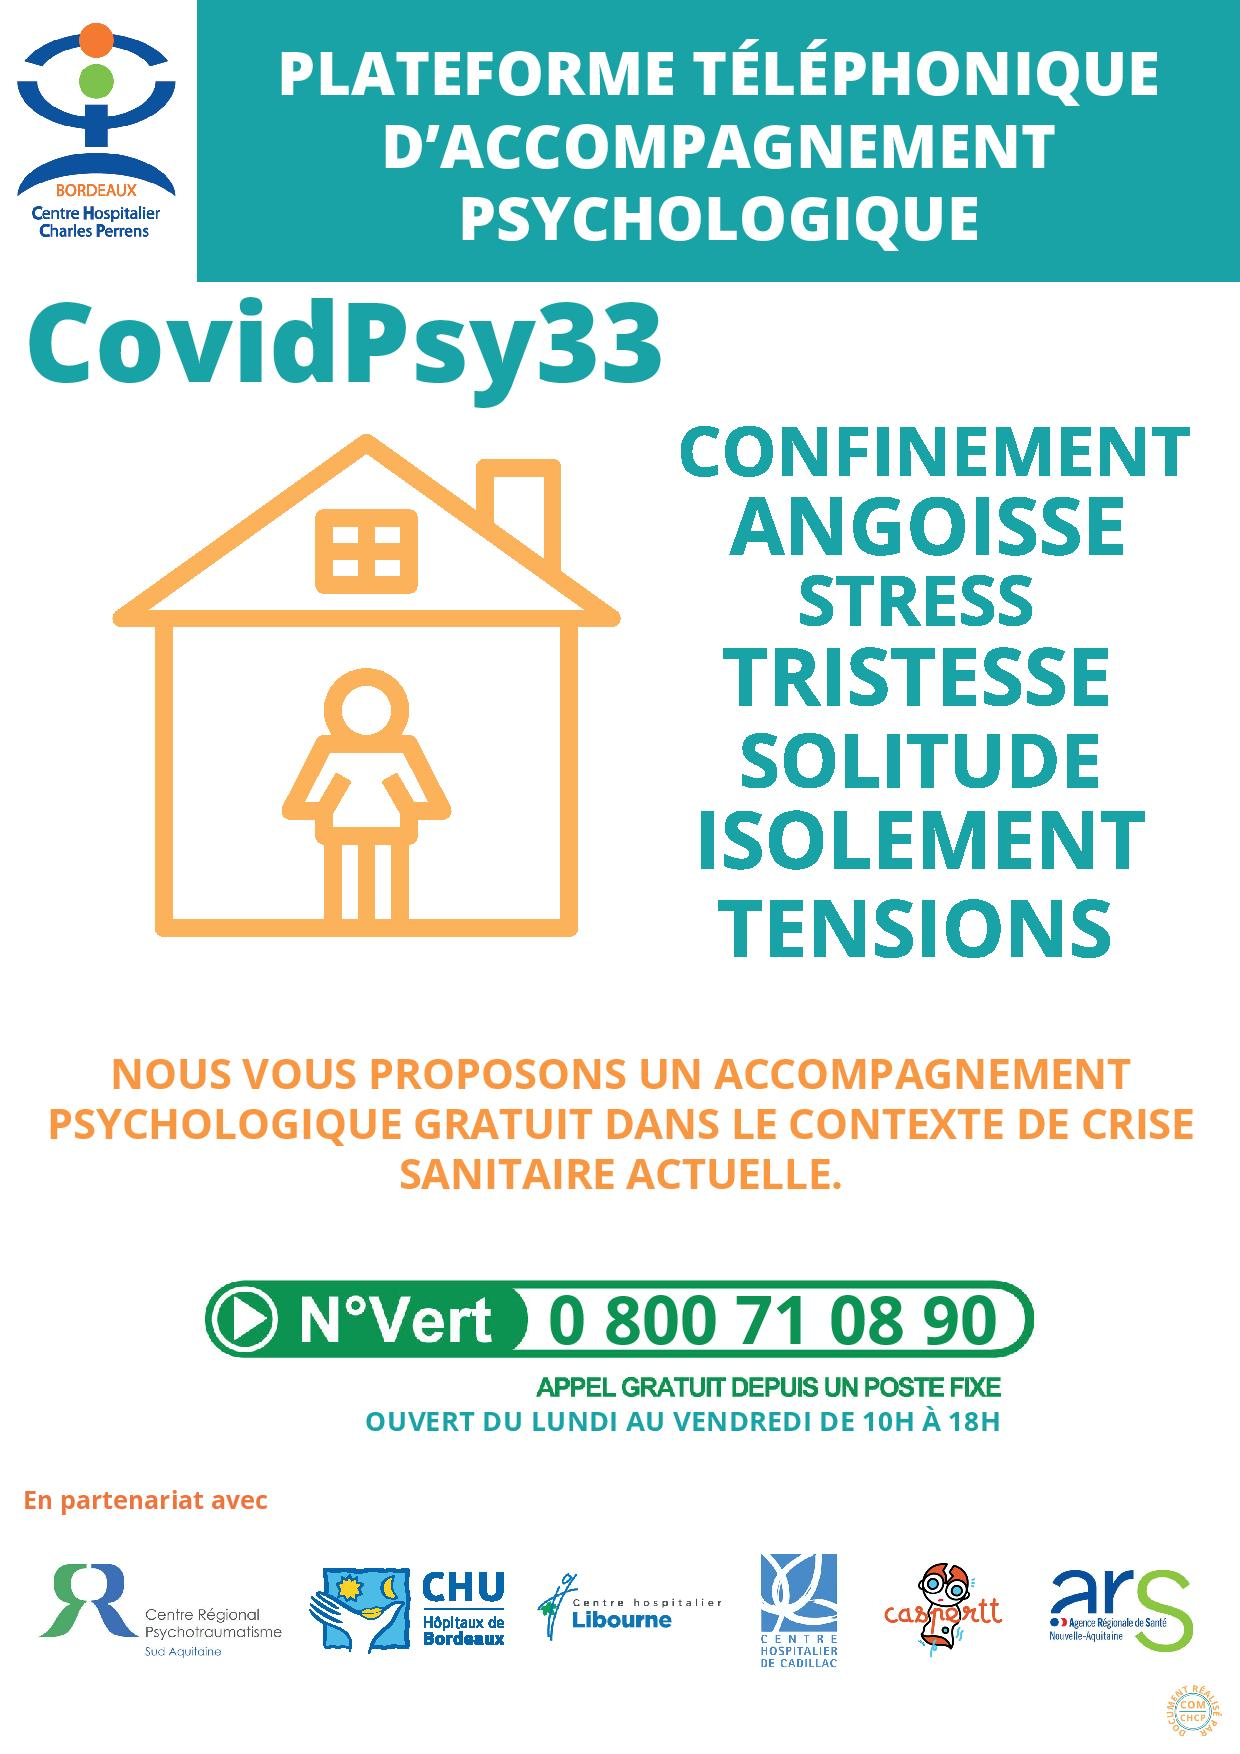 aff confinement covid psy33